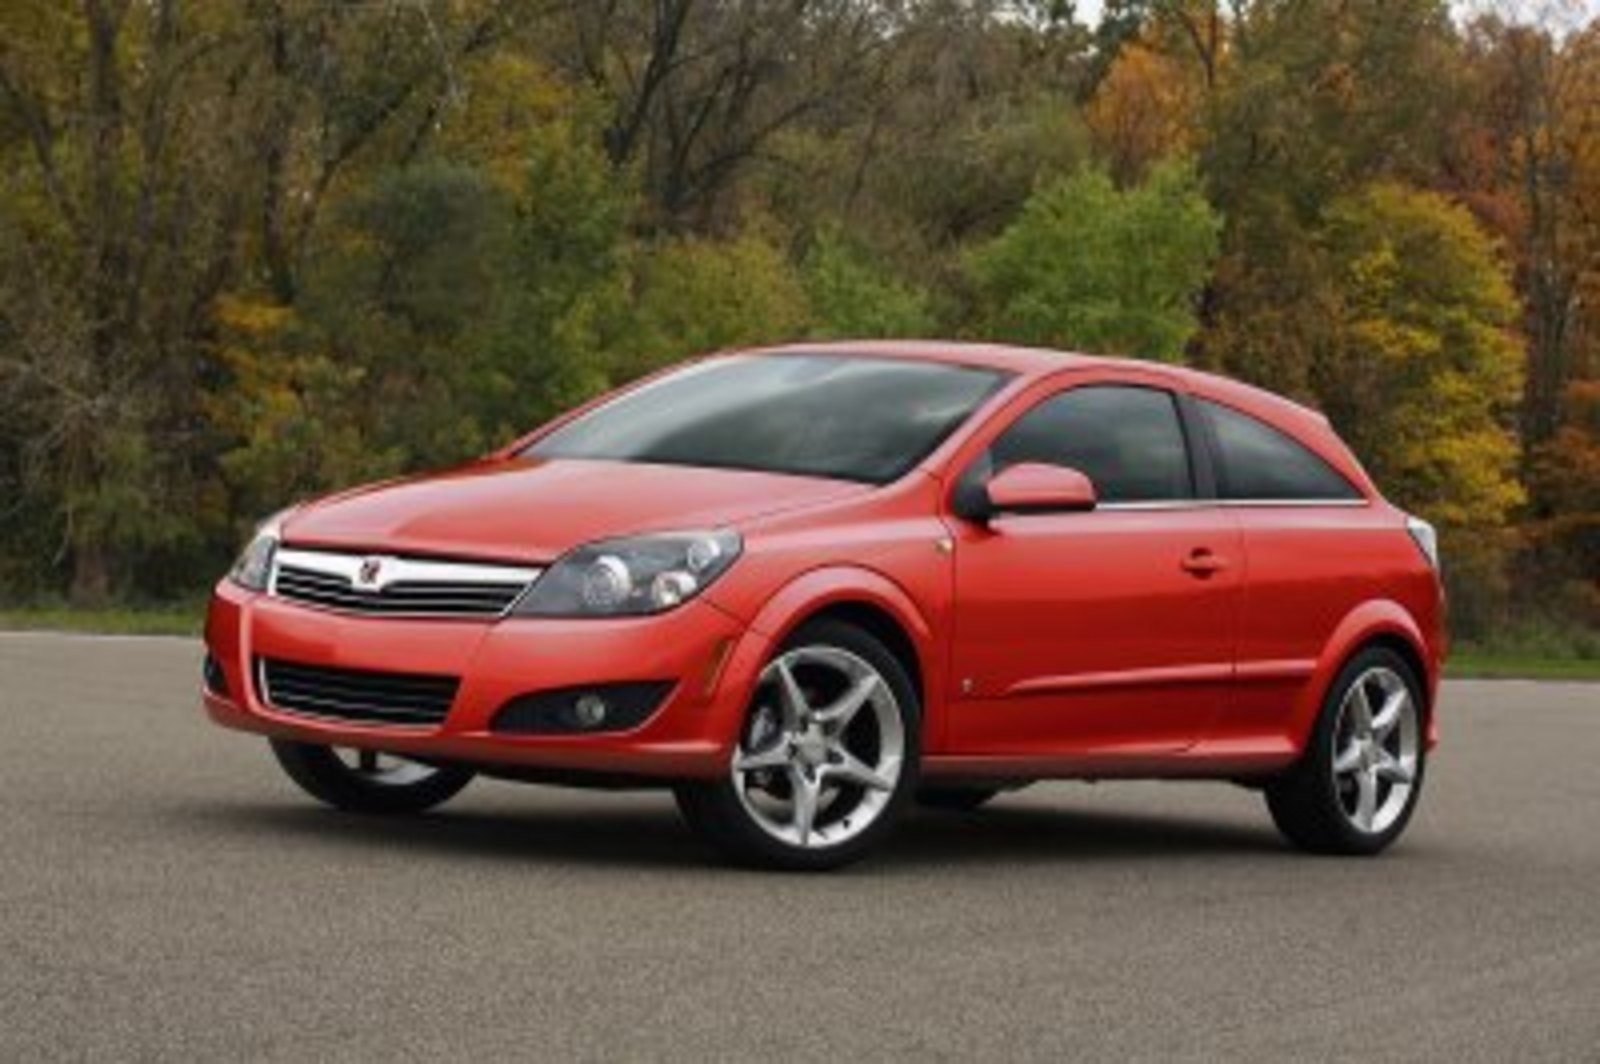 2008 Saturn Astra Review